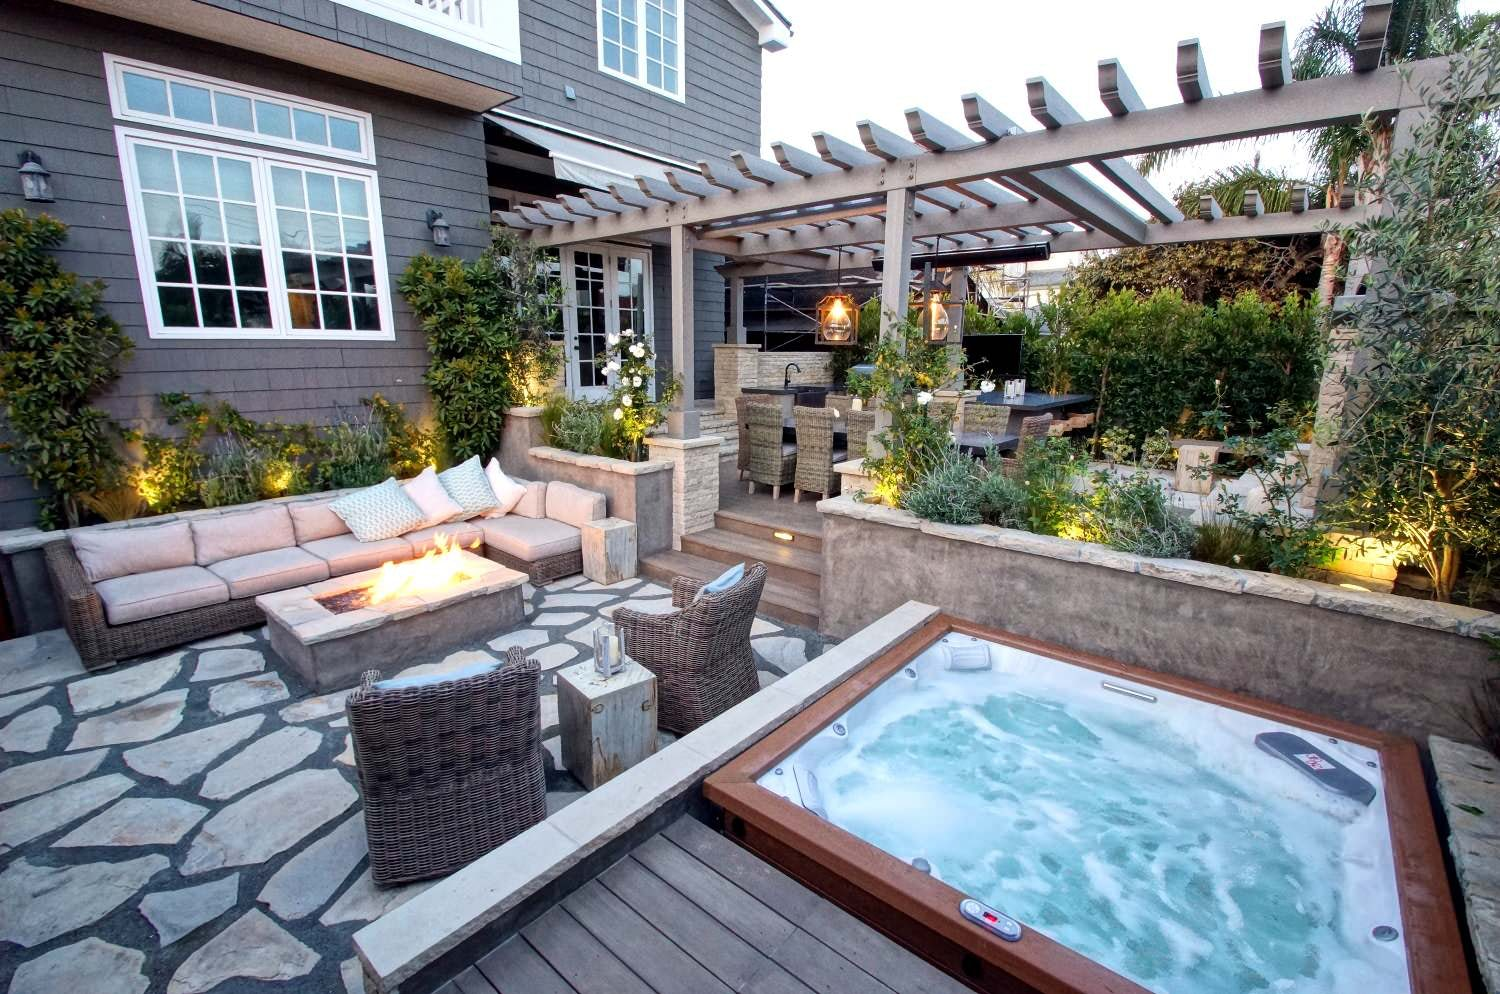 Fire pit backyard for entertainment